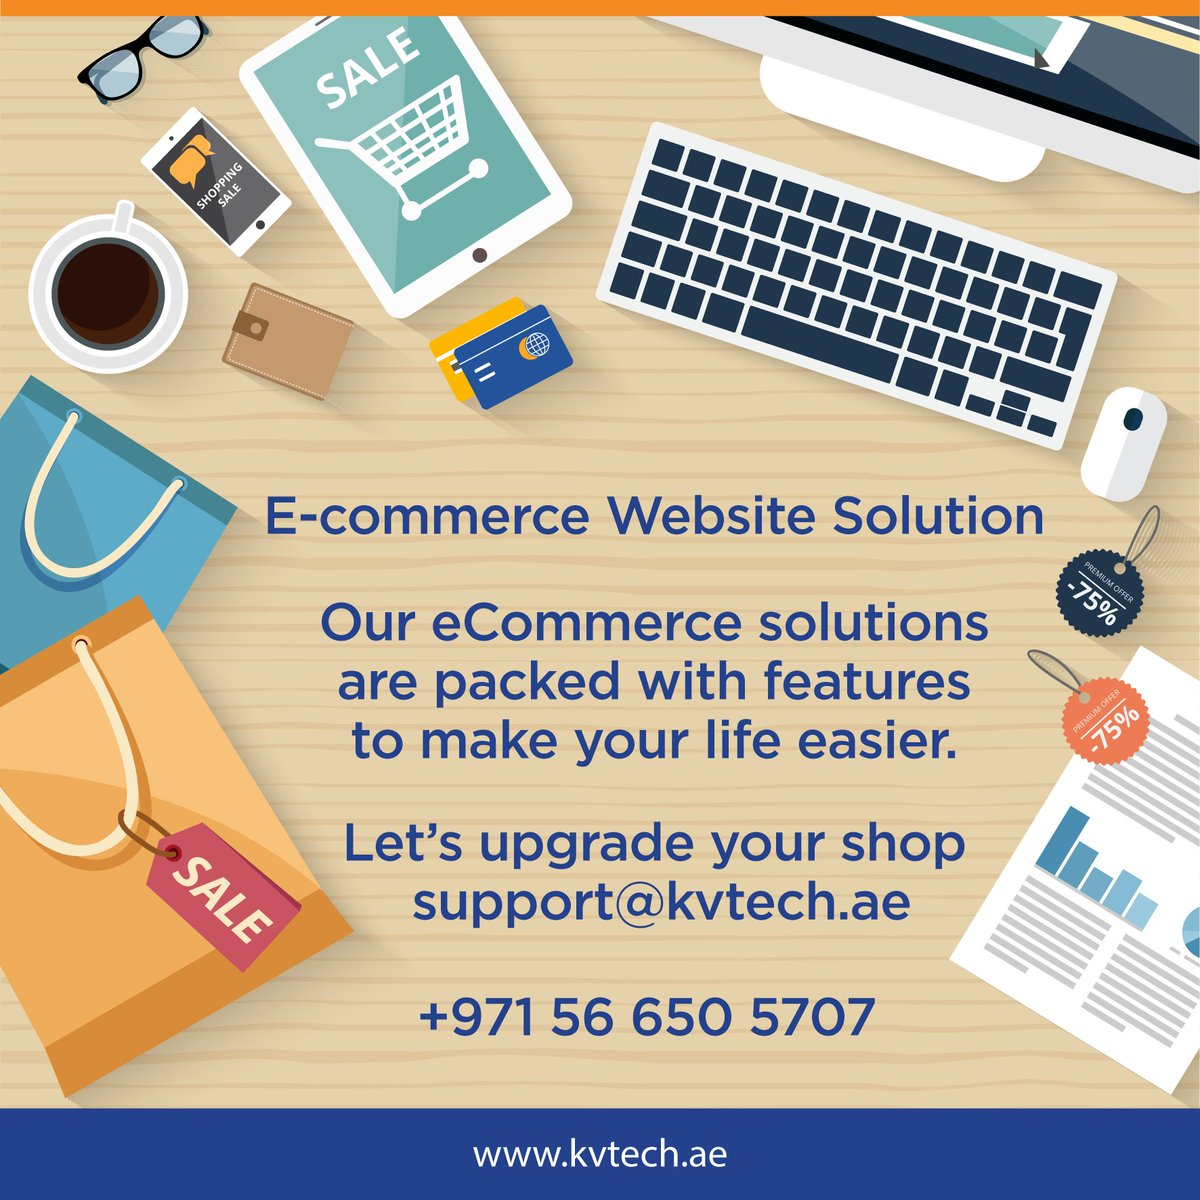 E-Commerce Website #DigitalMarketing #SMM #Mpgvip #defstar5 #Marketing #makeyourownlane #growthhacking #SEO #ff #SEM #startup +971 566505707<br>http://pic.twitter.com/sTR1oUXx67